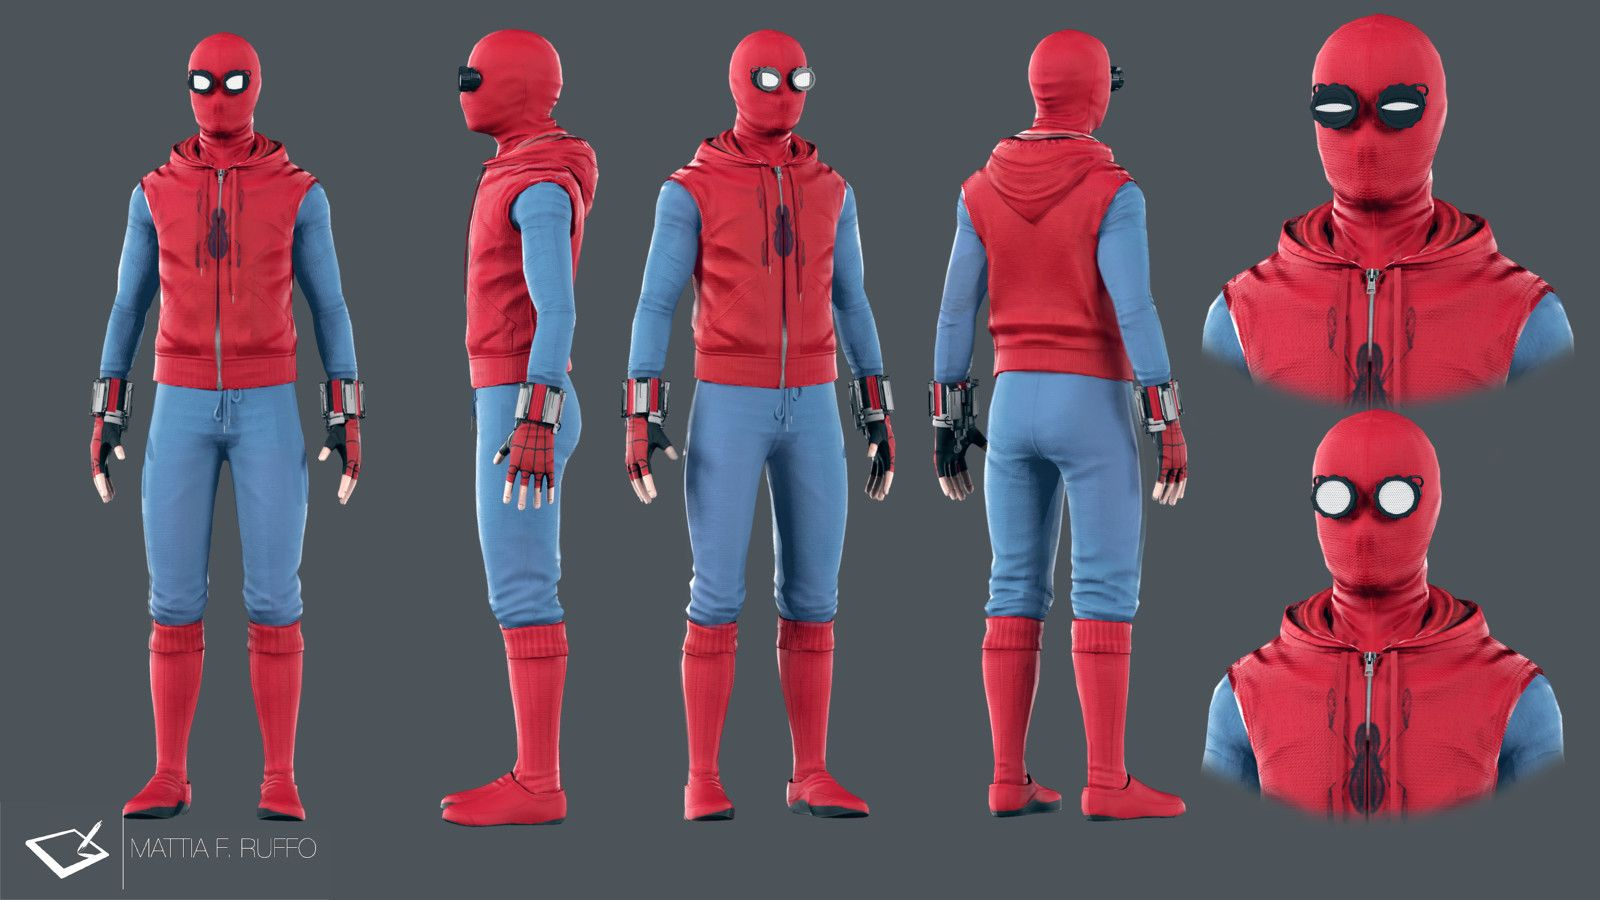 Spiderman Homecoming Homemade Suit Mattia F Ruffo On Artstation At Https Www Artstation Co Spiderman Homecoming Suit Spiderman Homecoming Spiderman Cosplay